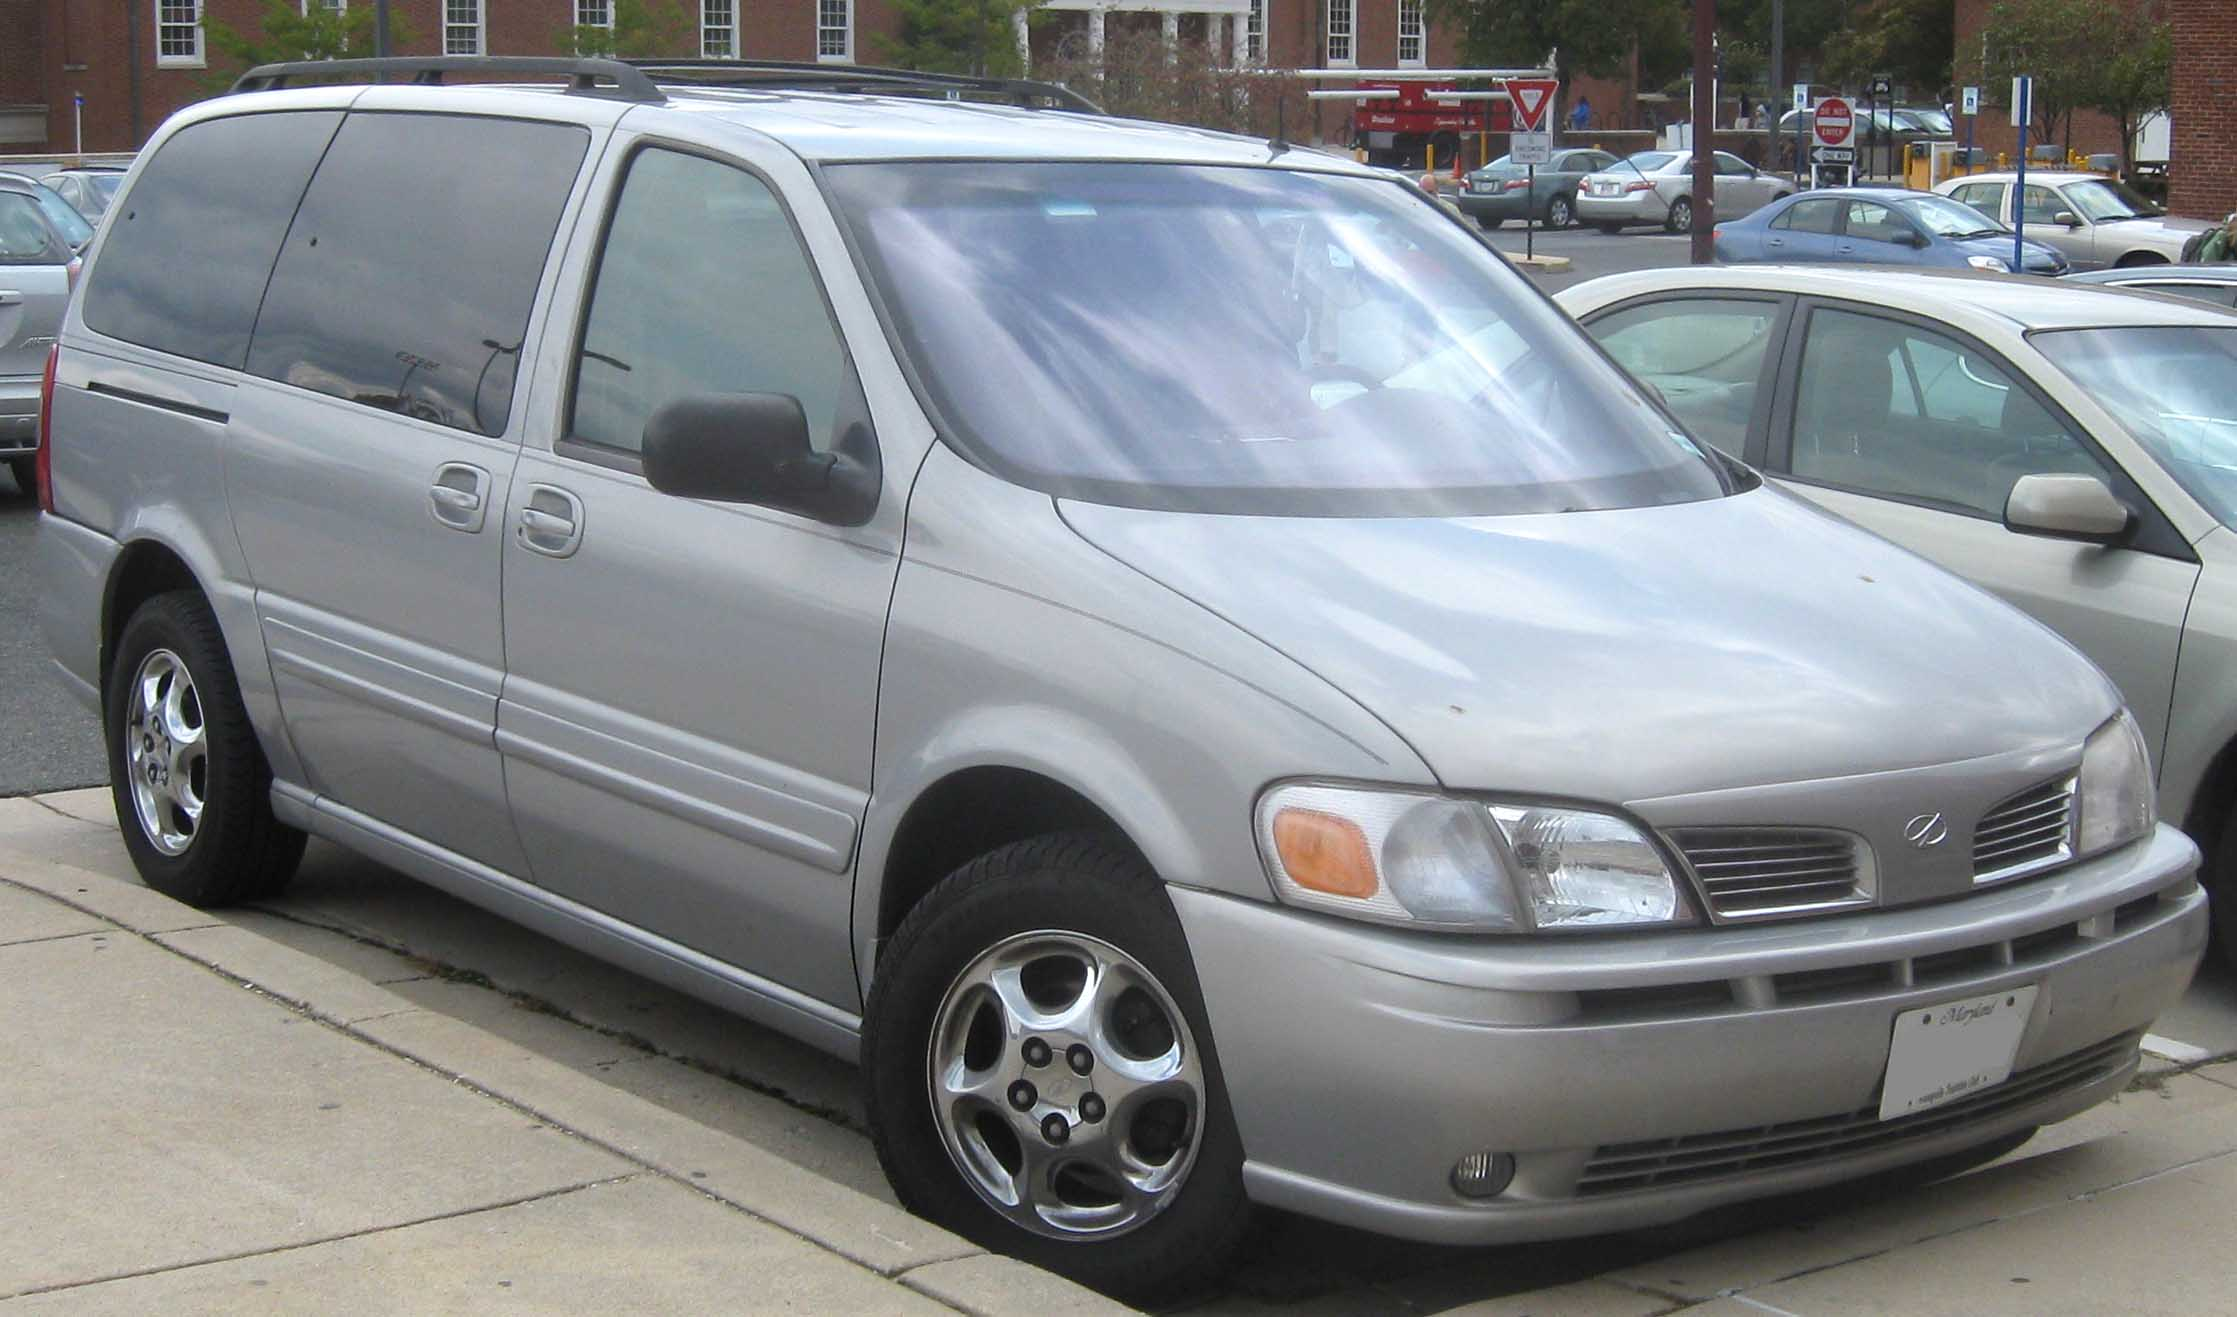 File:2001-2004 Oldsmobile Silhouette.jpg - Wikimedia Commons